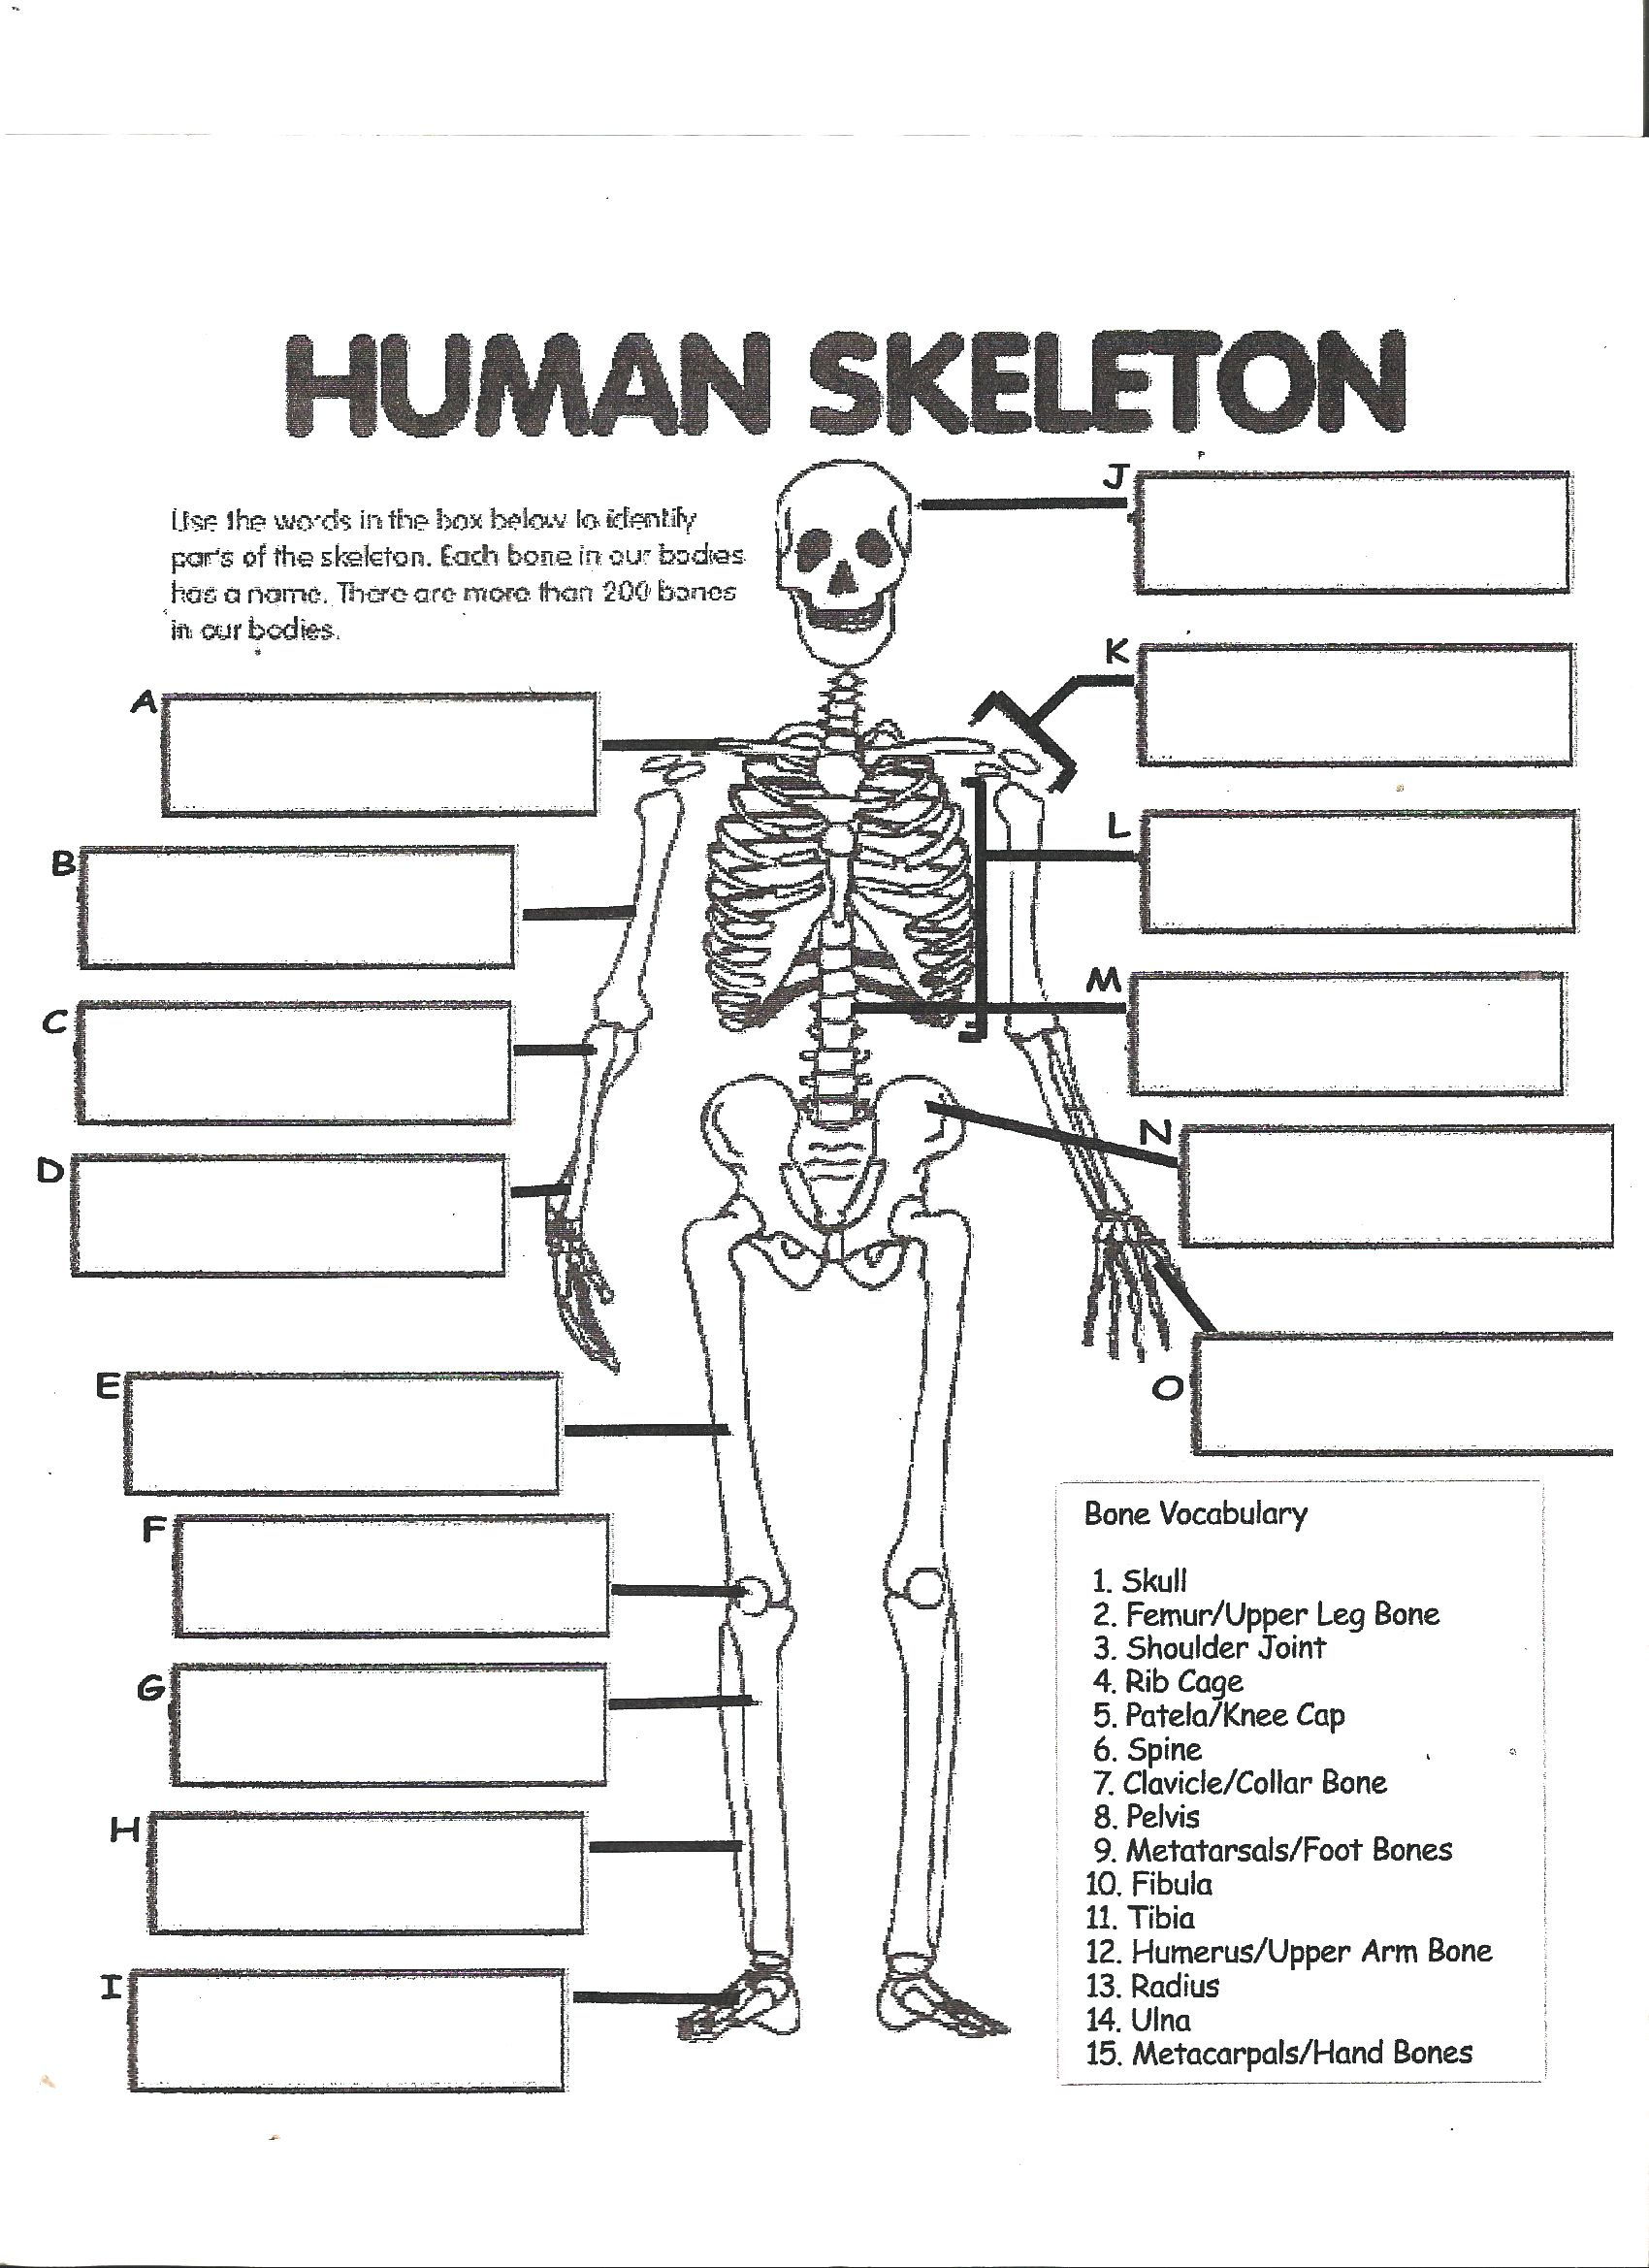 Uncategorized Skeletal System Worksheet Answers digestive system labeling worksheet answers human skeleton worksheet